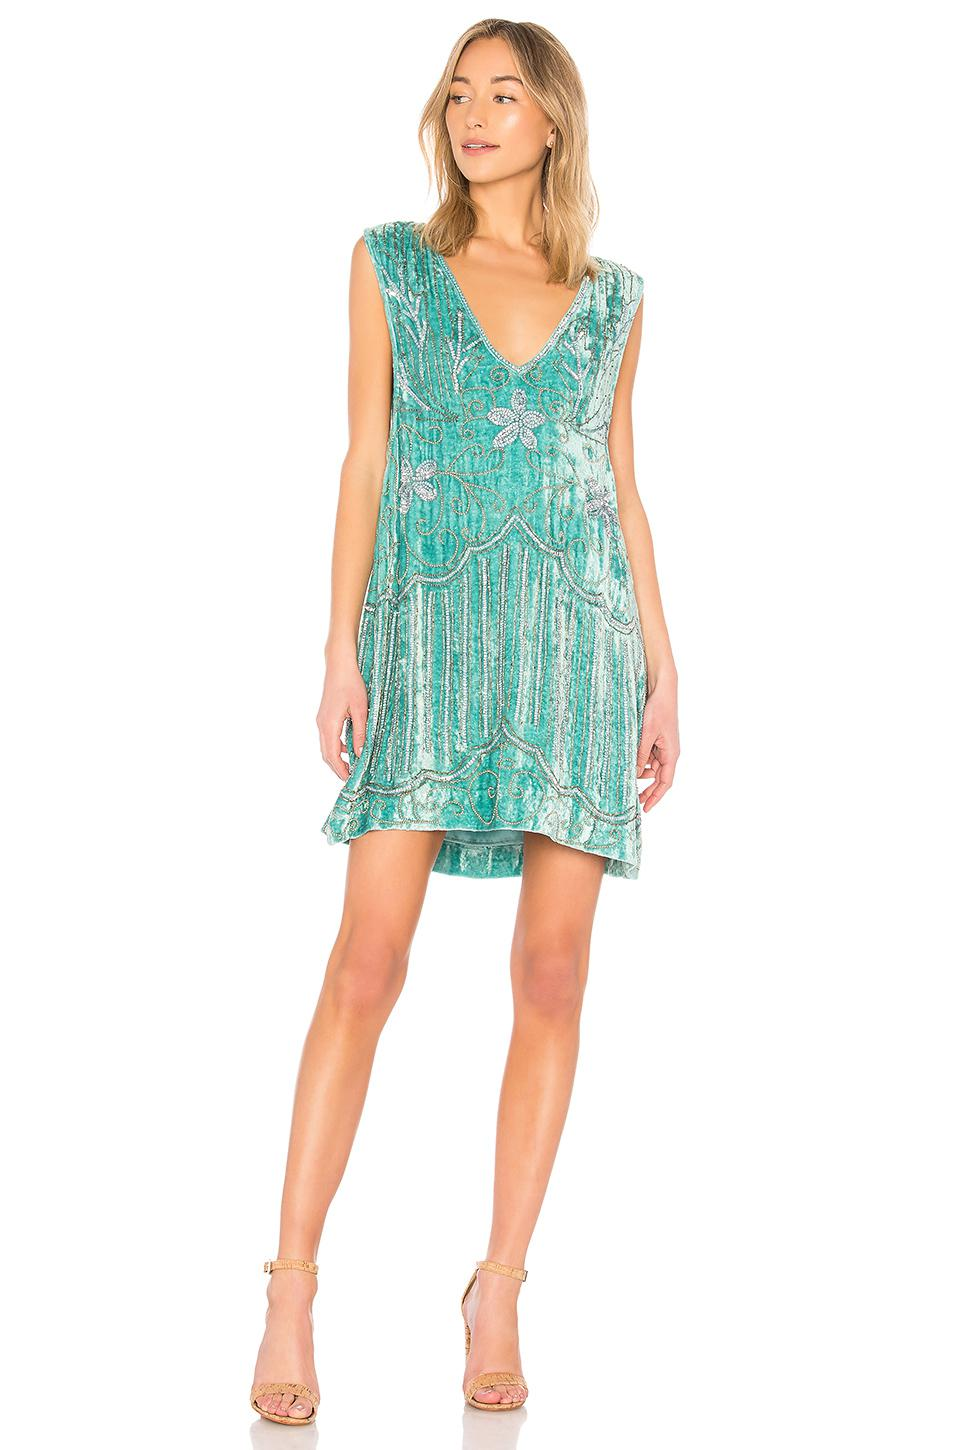 Spell & The Gypsy Collective Elsa Sequin Dress in Green - Lyst